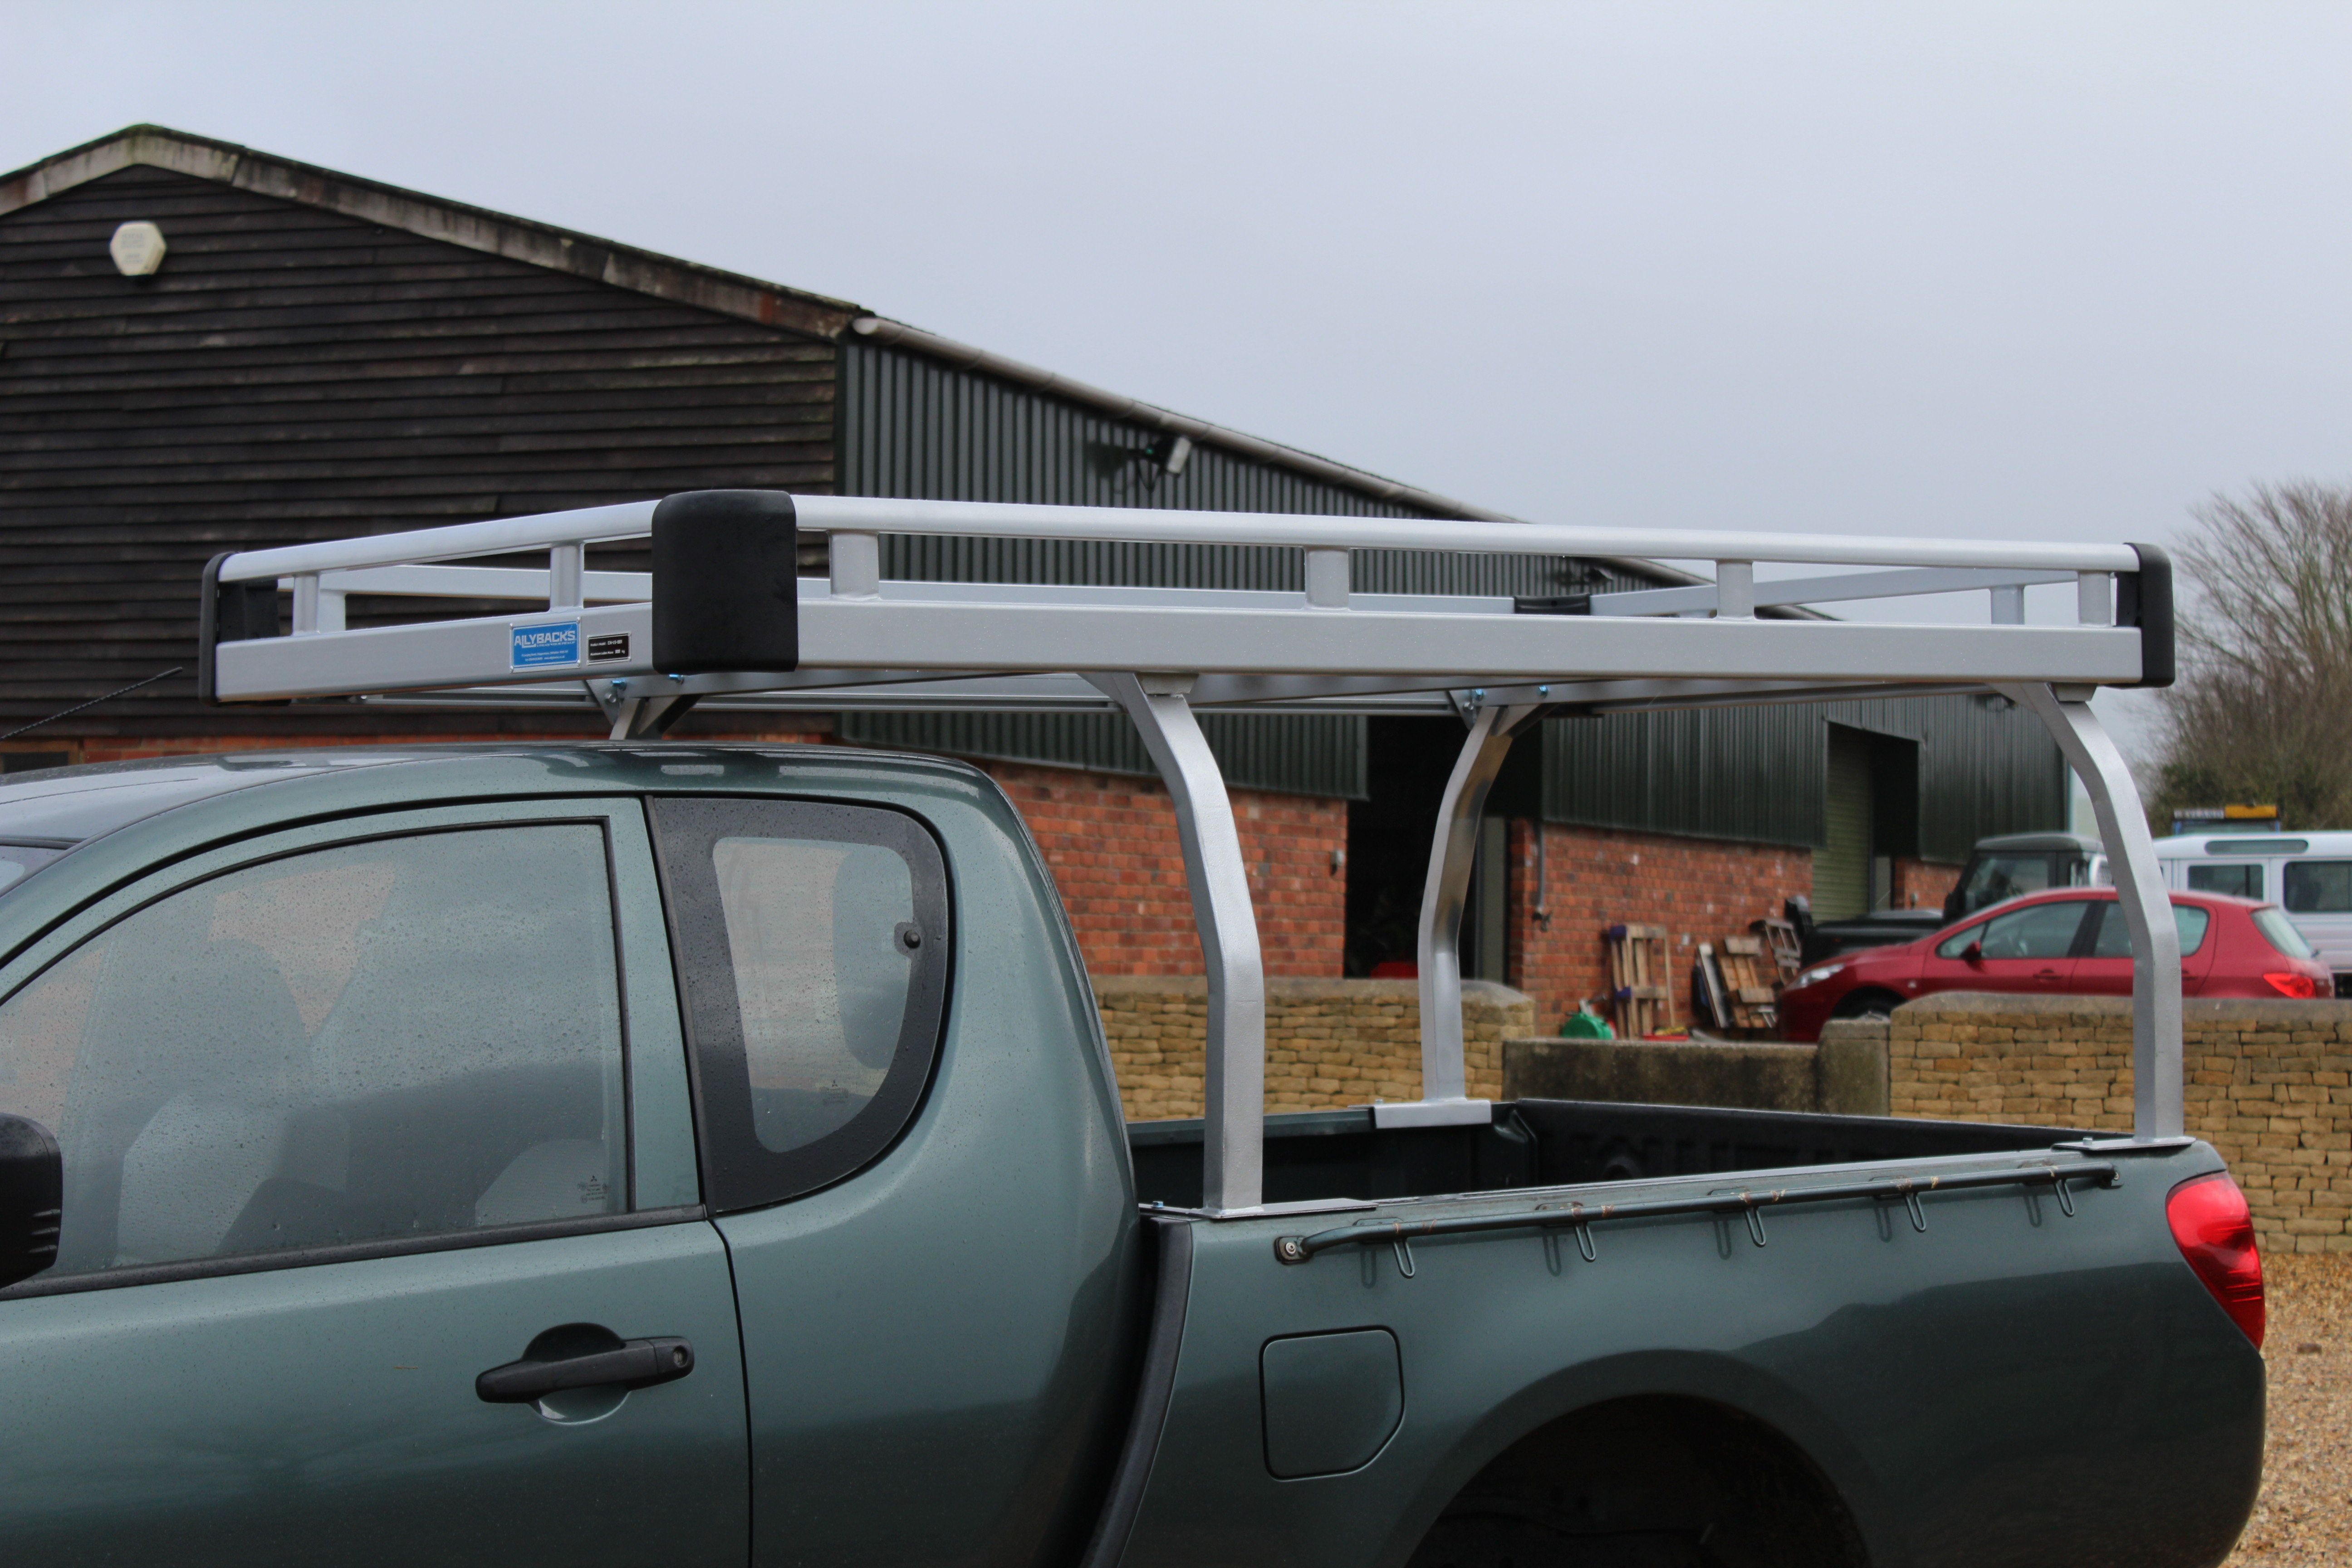 strap all trailers trucks truck to your roofs racks of you down extenders rack bare yak ways a transport but are them etc strapping for roof variety bed require kayak there bondage